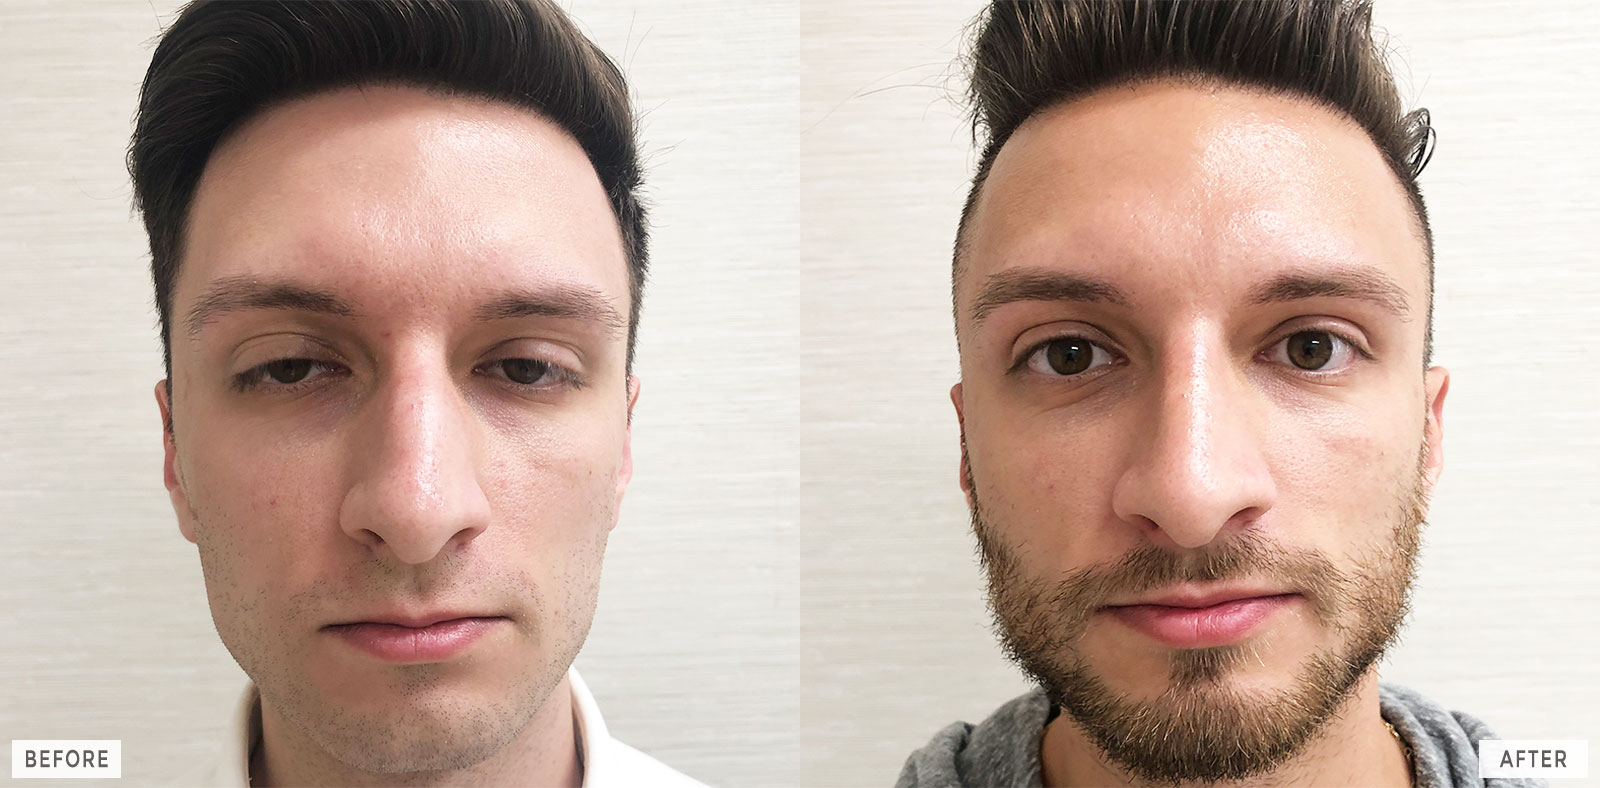 philadelphia-cosmetic-rhinoplasty-facelift-before-after_11a